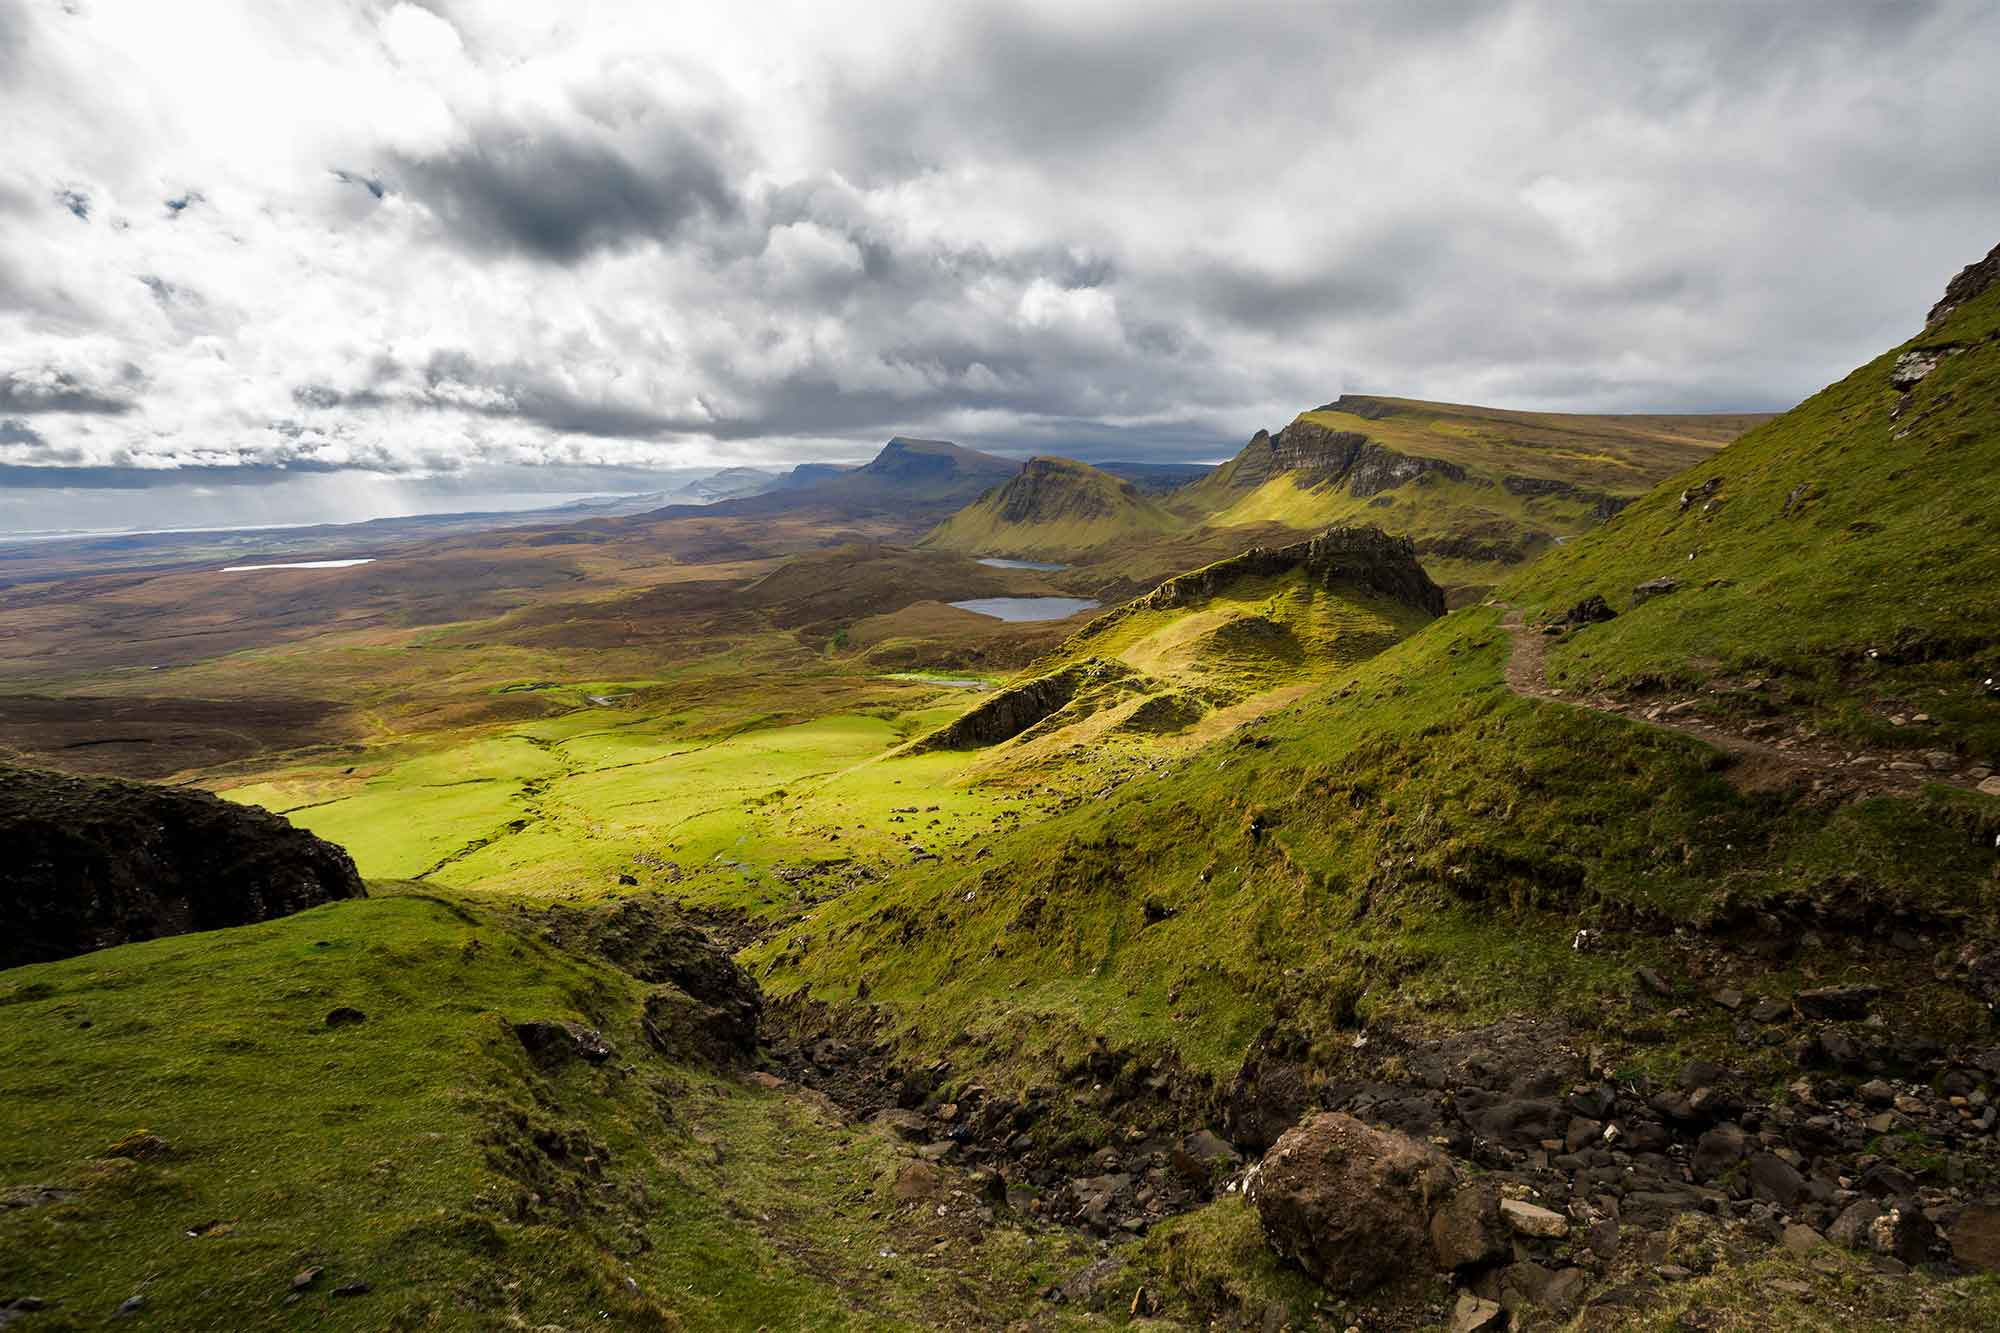 The Quiraing is a landslip on the Isle of Skye and a world famous hike. © ULLI MAIER & NISA MAIER